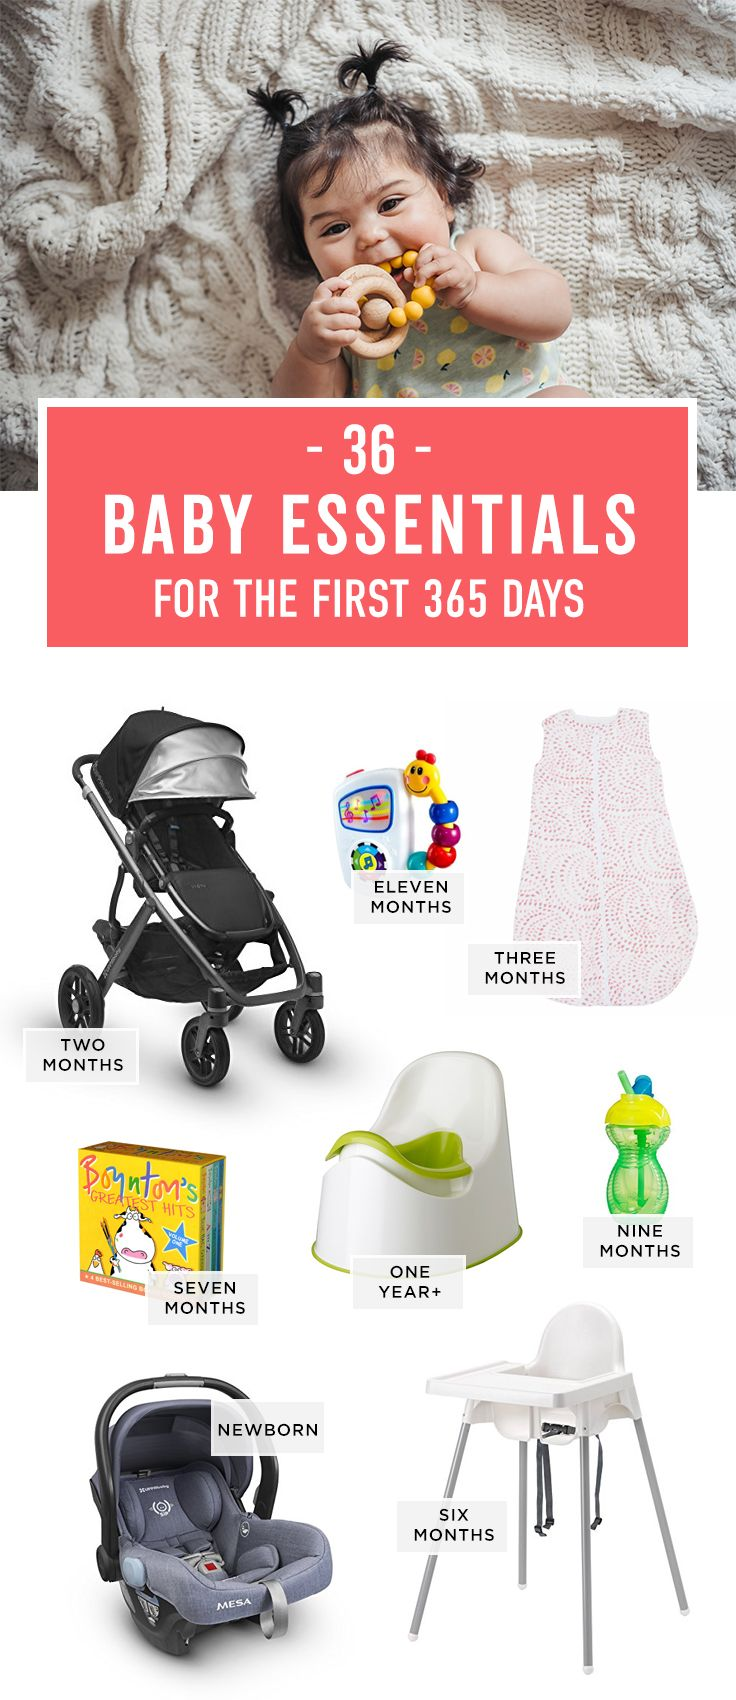 Basics You Need for Baby's First Year